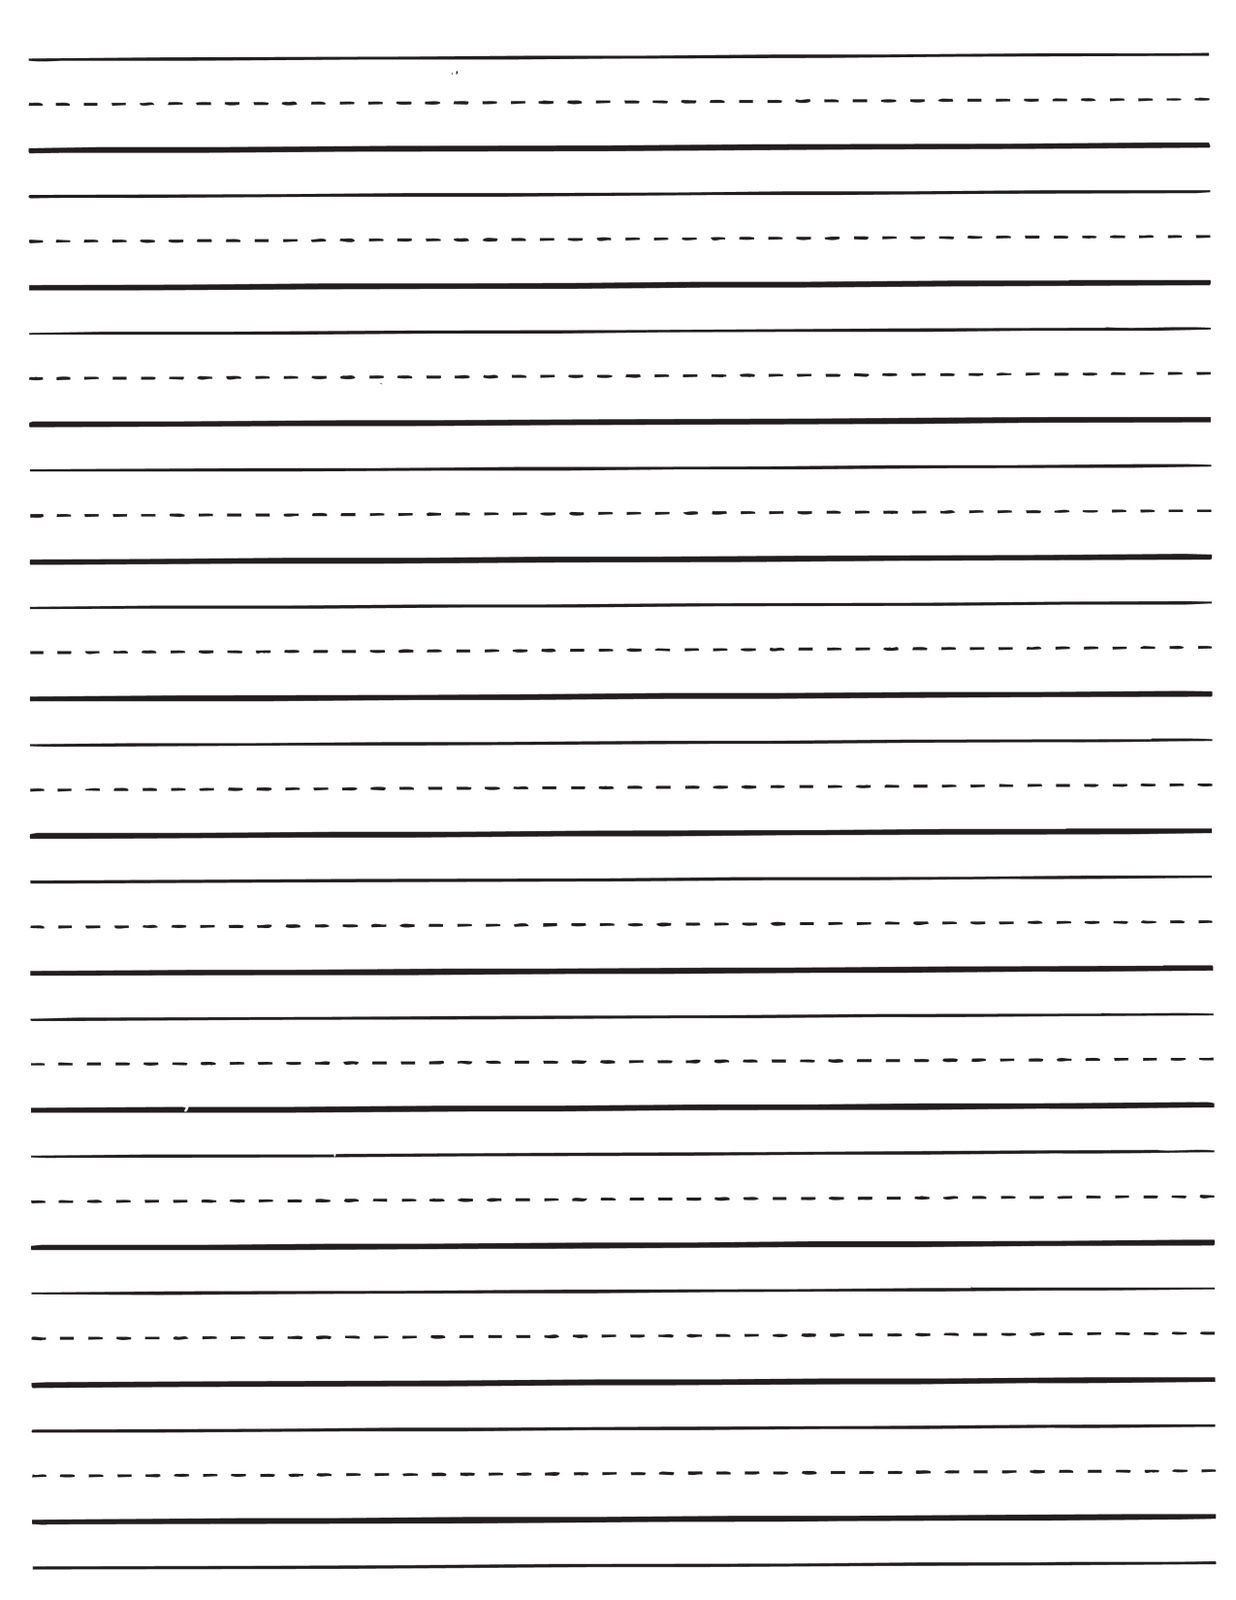 Awesome Second Grade Ruled Paper | Lined Paper For You And Lined Paper To Write On